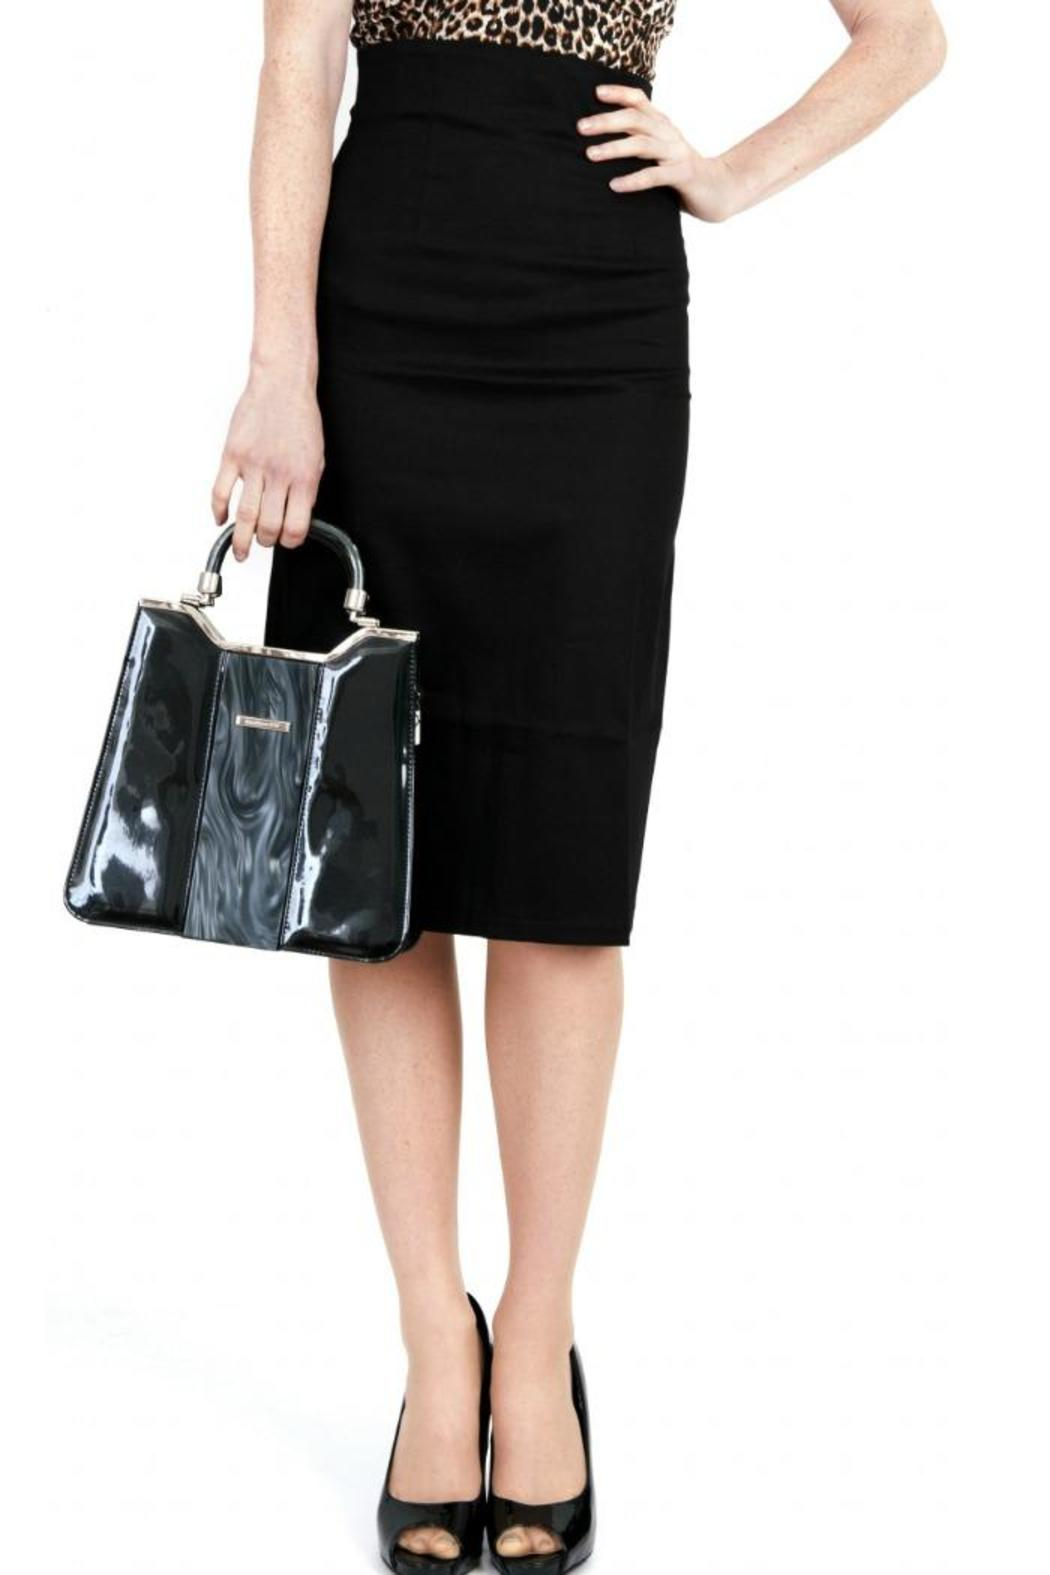 collectif clothing fiona pencil skirt from toronto by